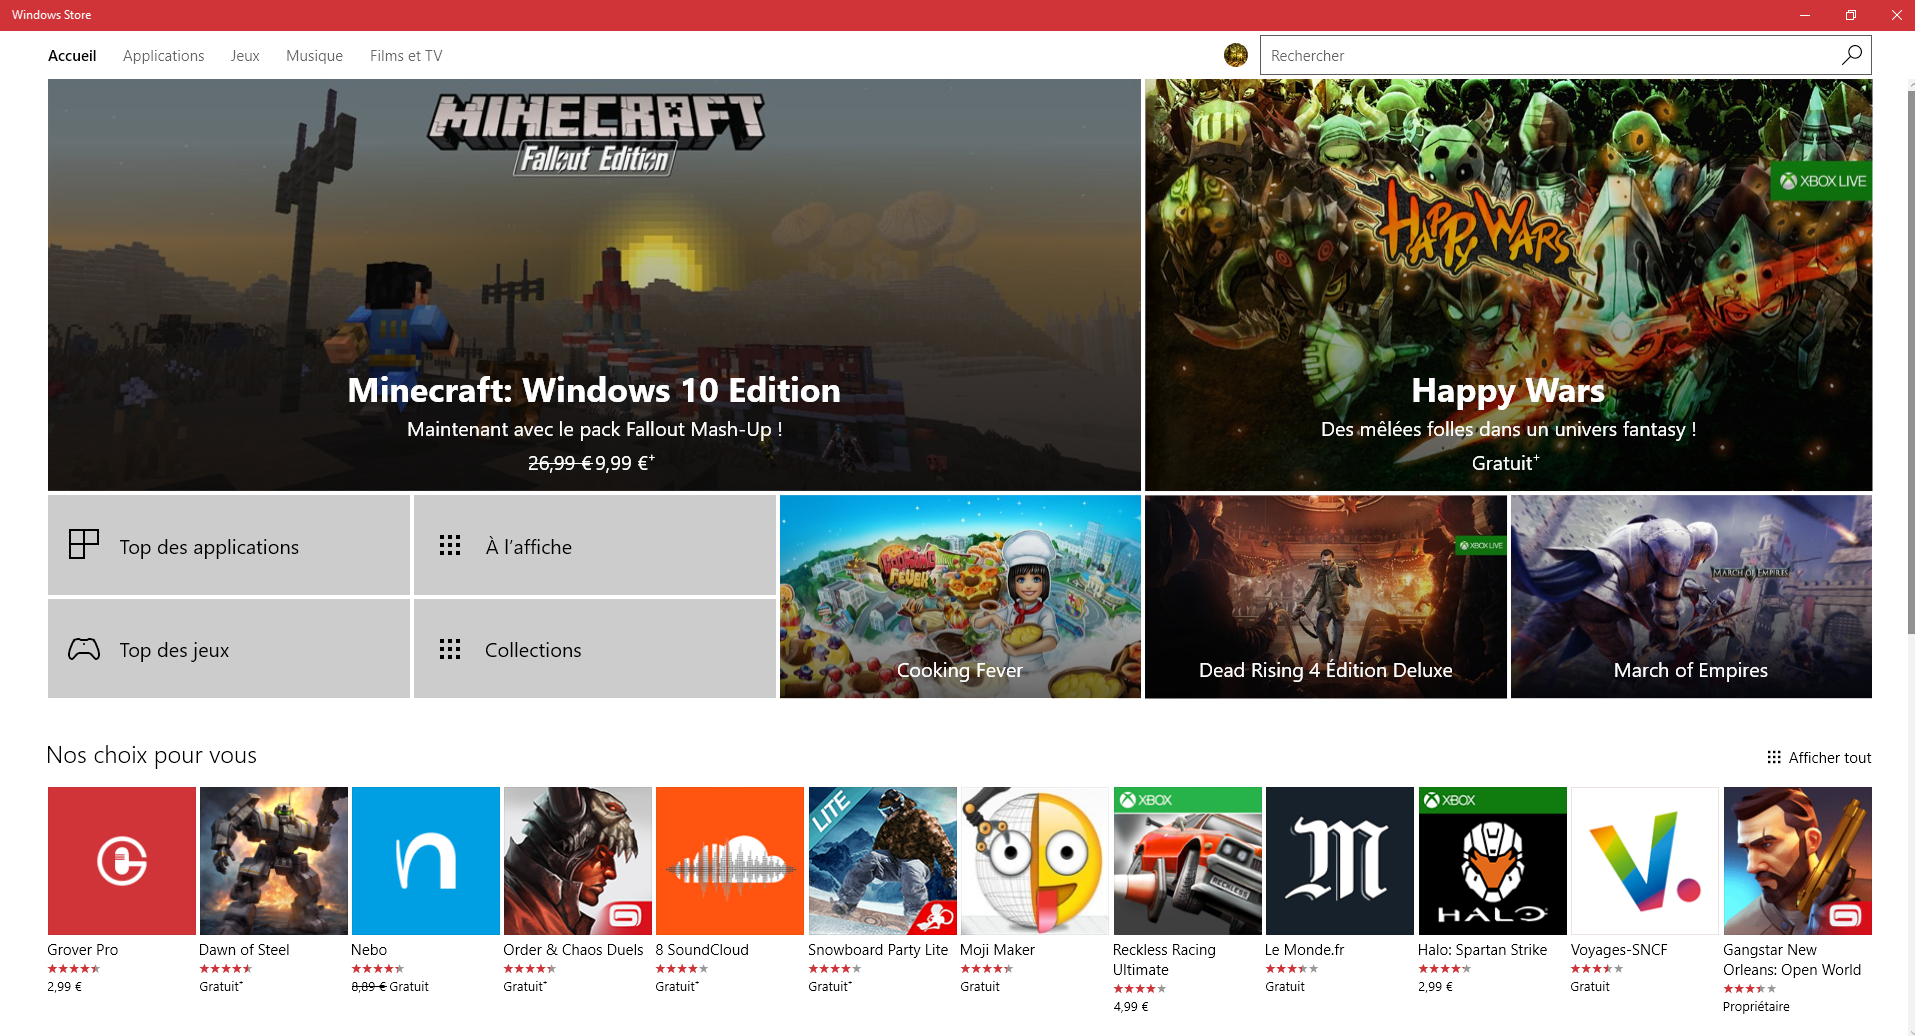 Le Windows Store, seul moyen d'obtenir des applications sous Windows 10S.